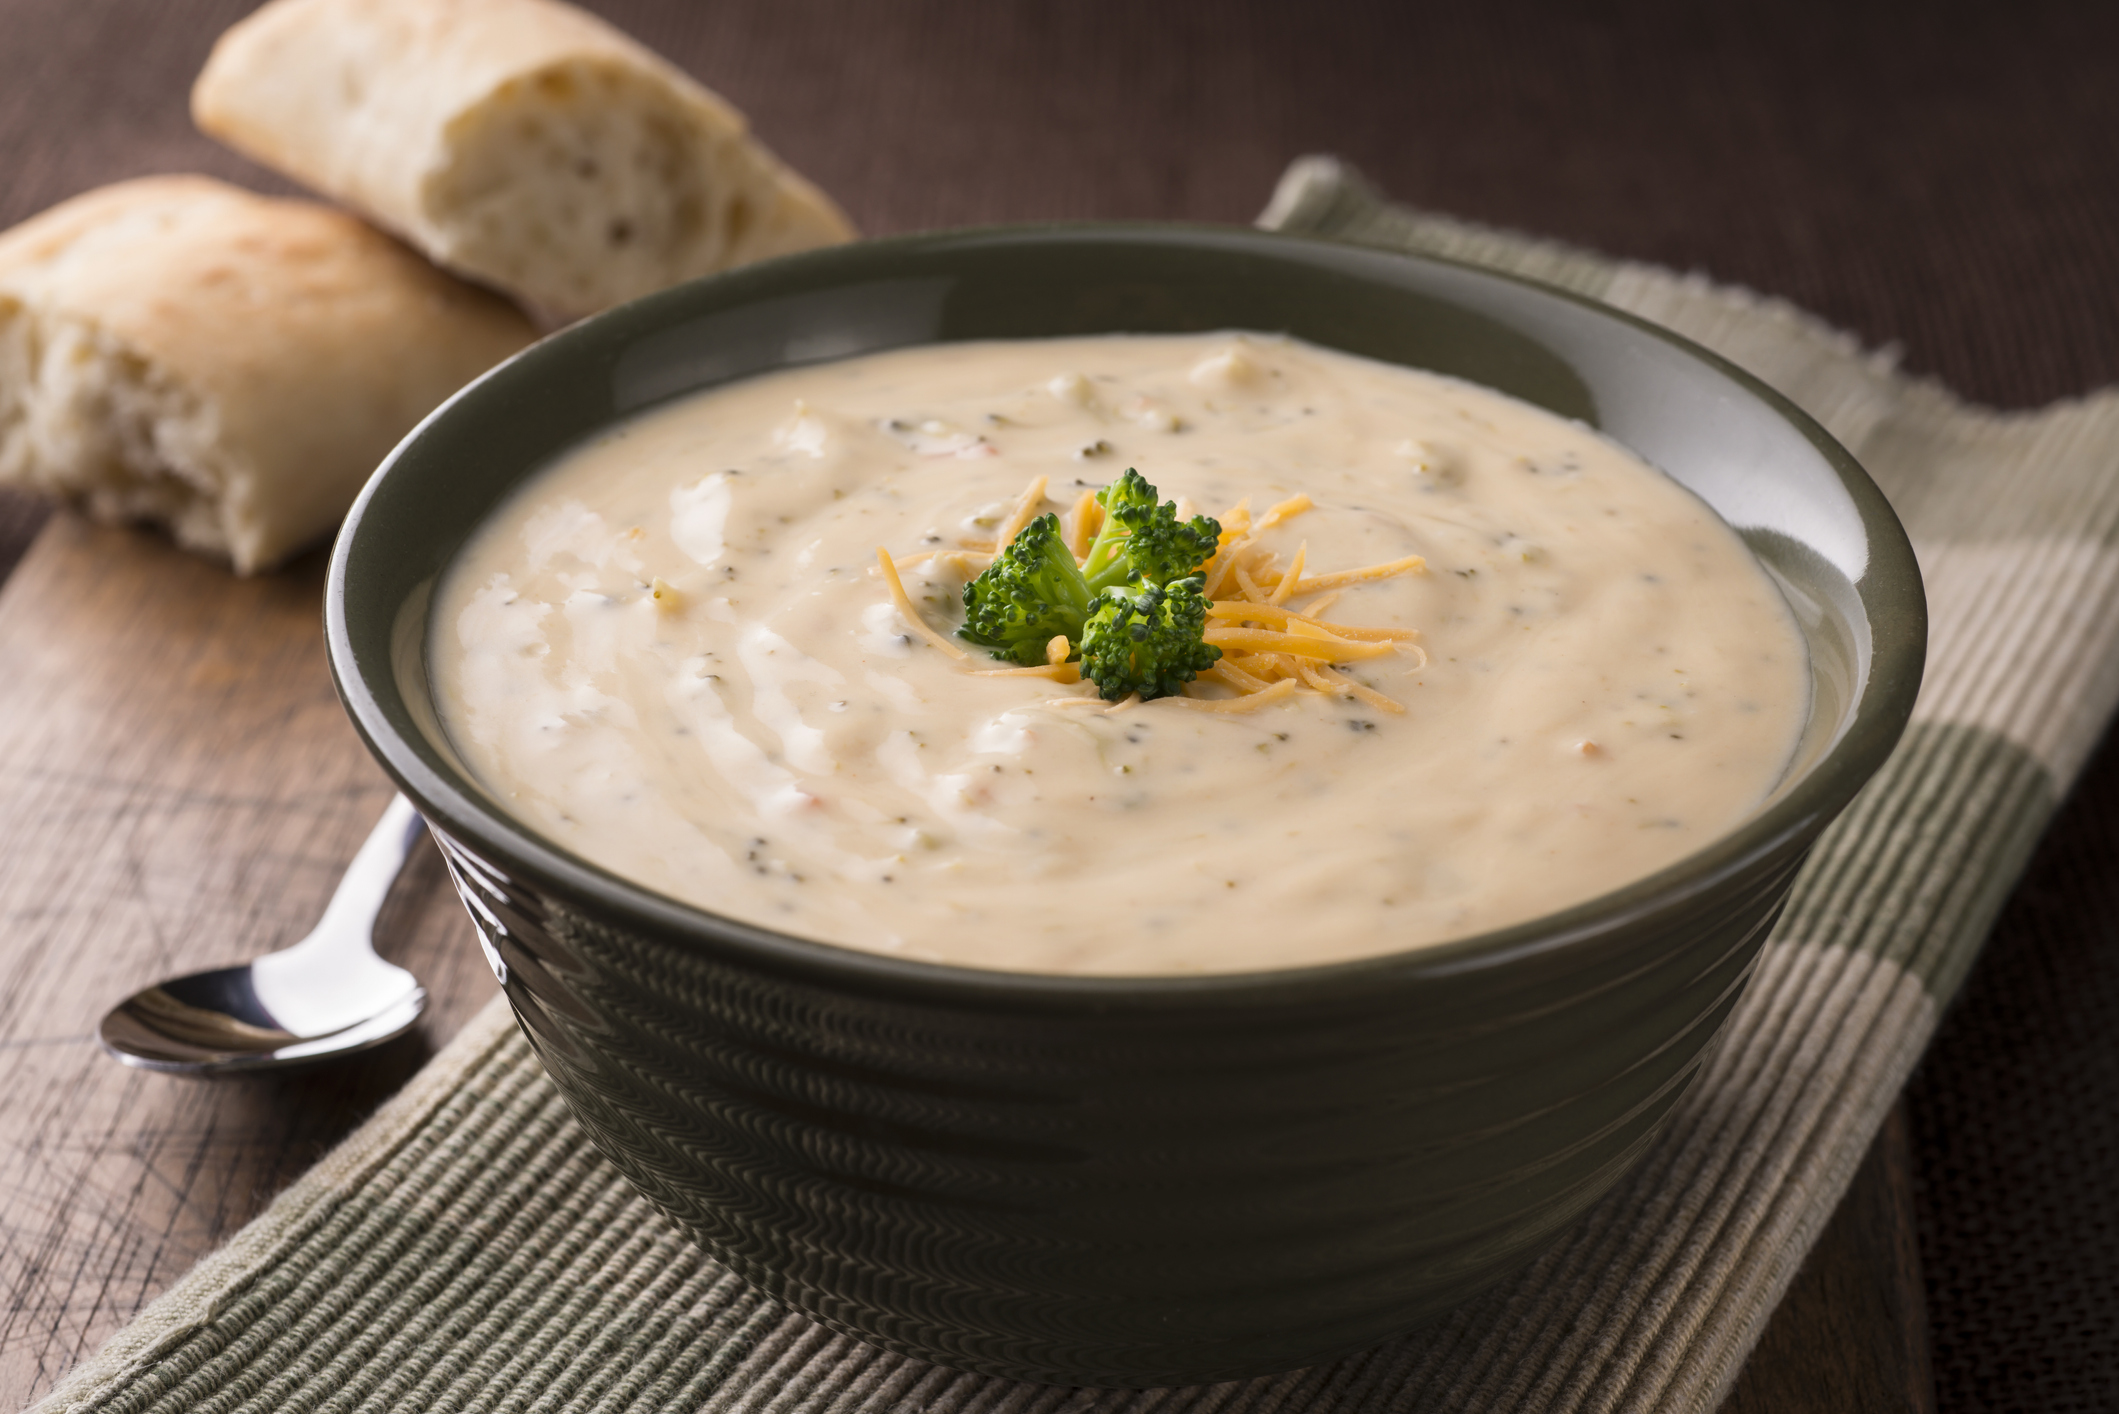 Broccoli & Cheese Soup